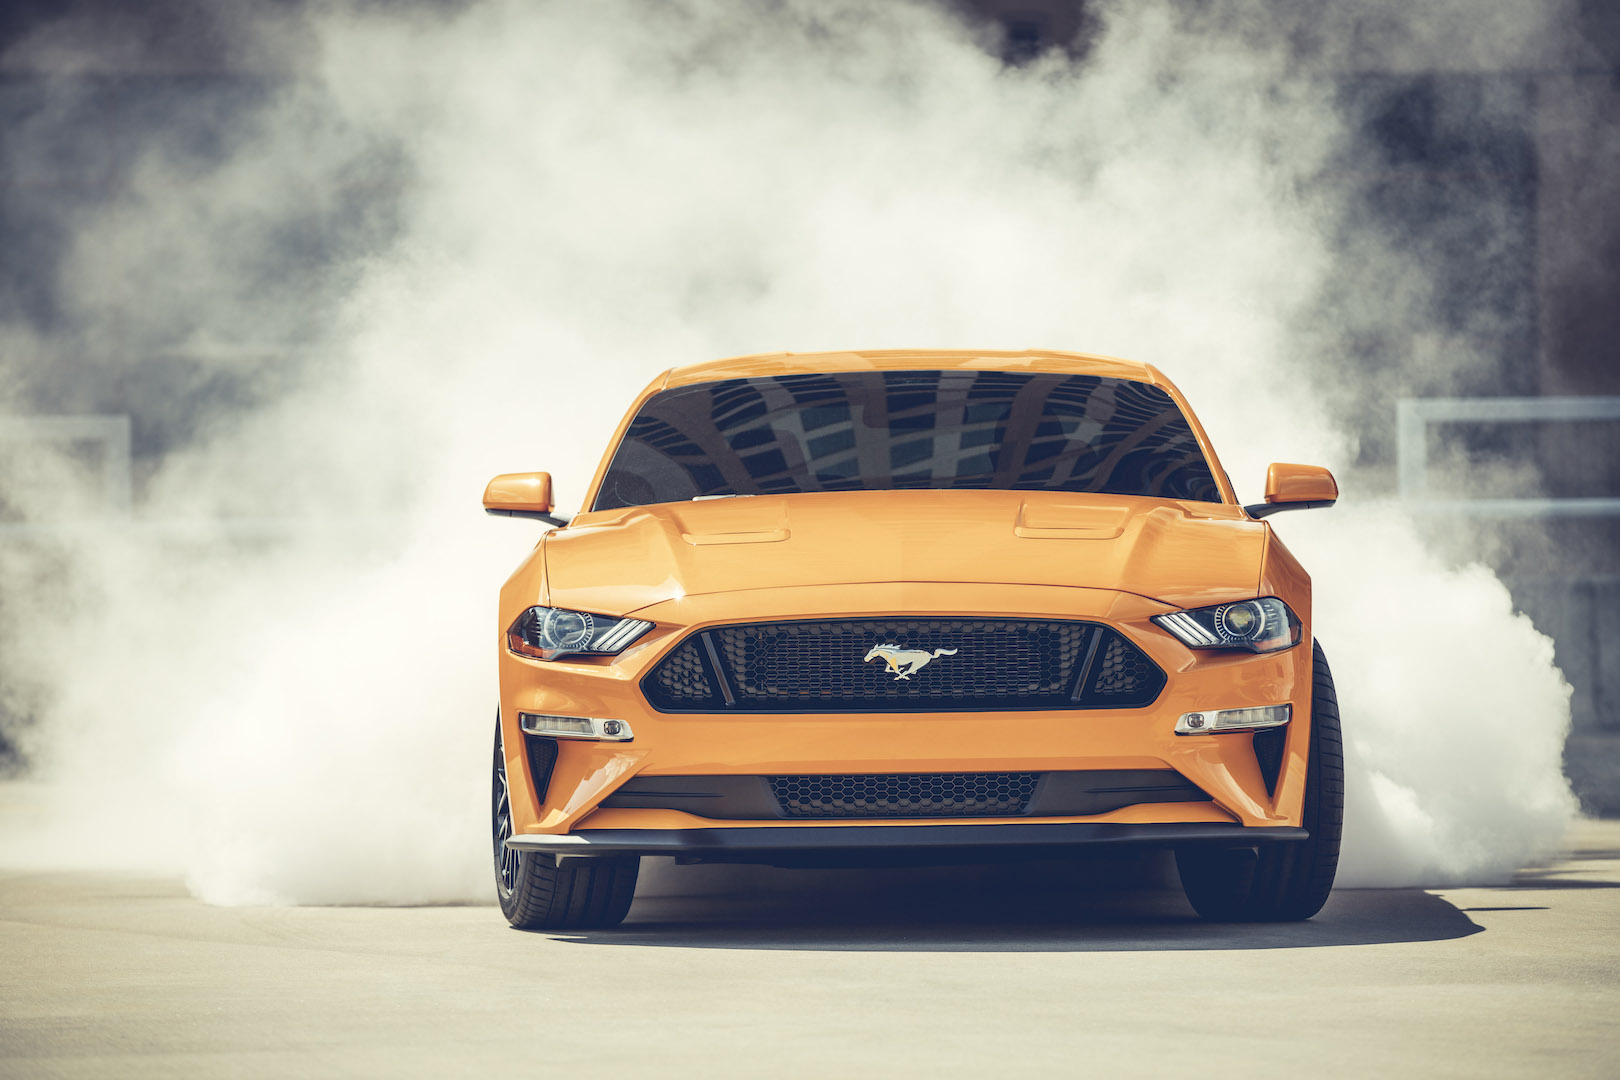 The deal is back 800 horsepower ford mustang gt for 39995